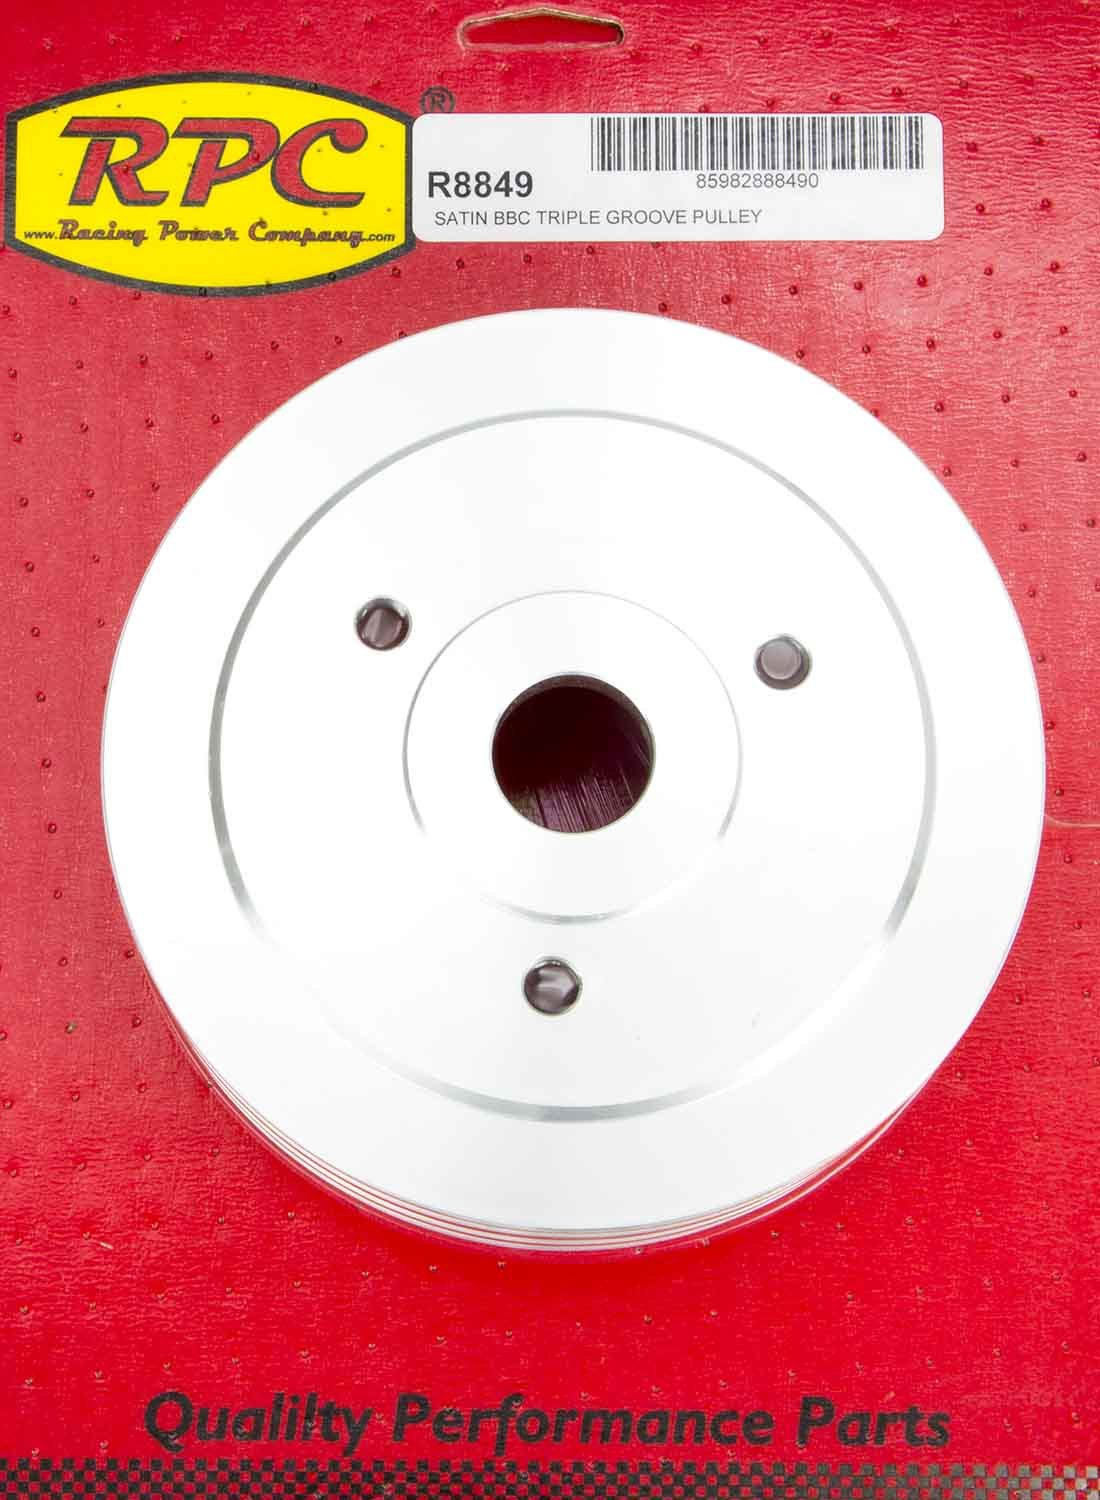 Racing Power Co-packaged BBC SWP Triple Groove Lower Pulley Satin